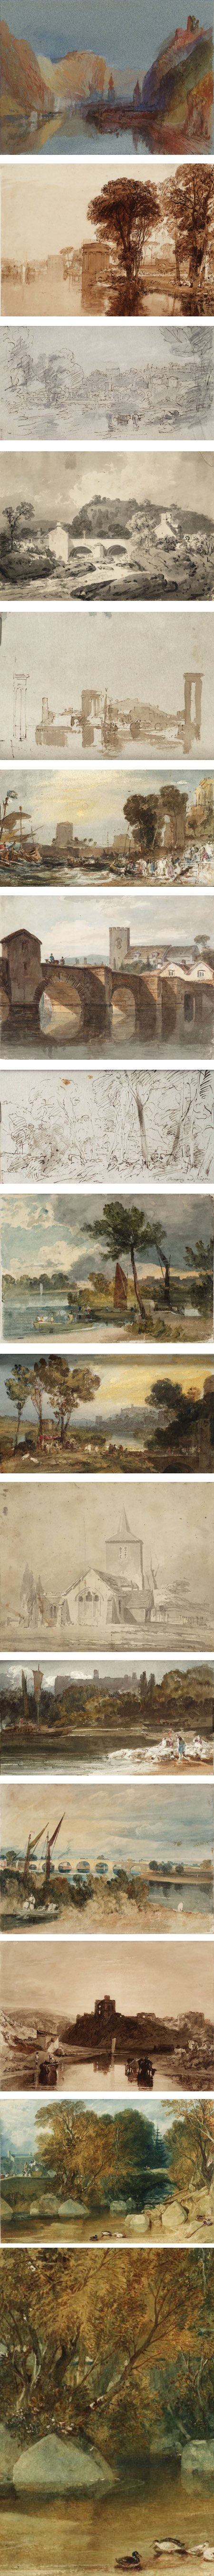 J.M.W. Turner Sketchbooks